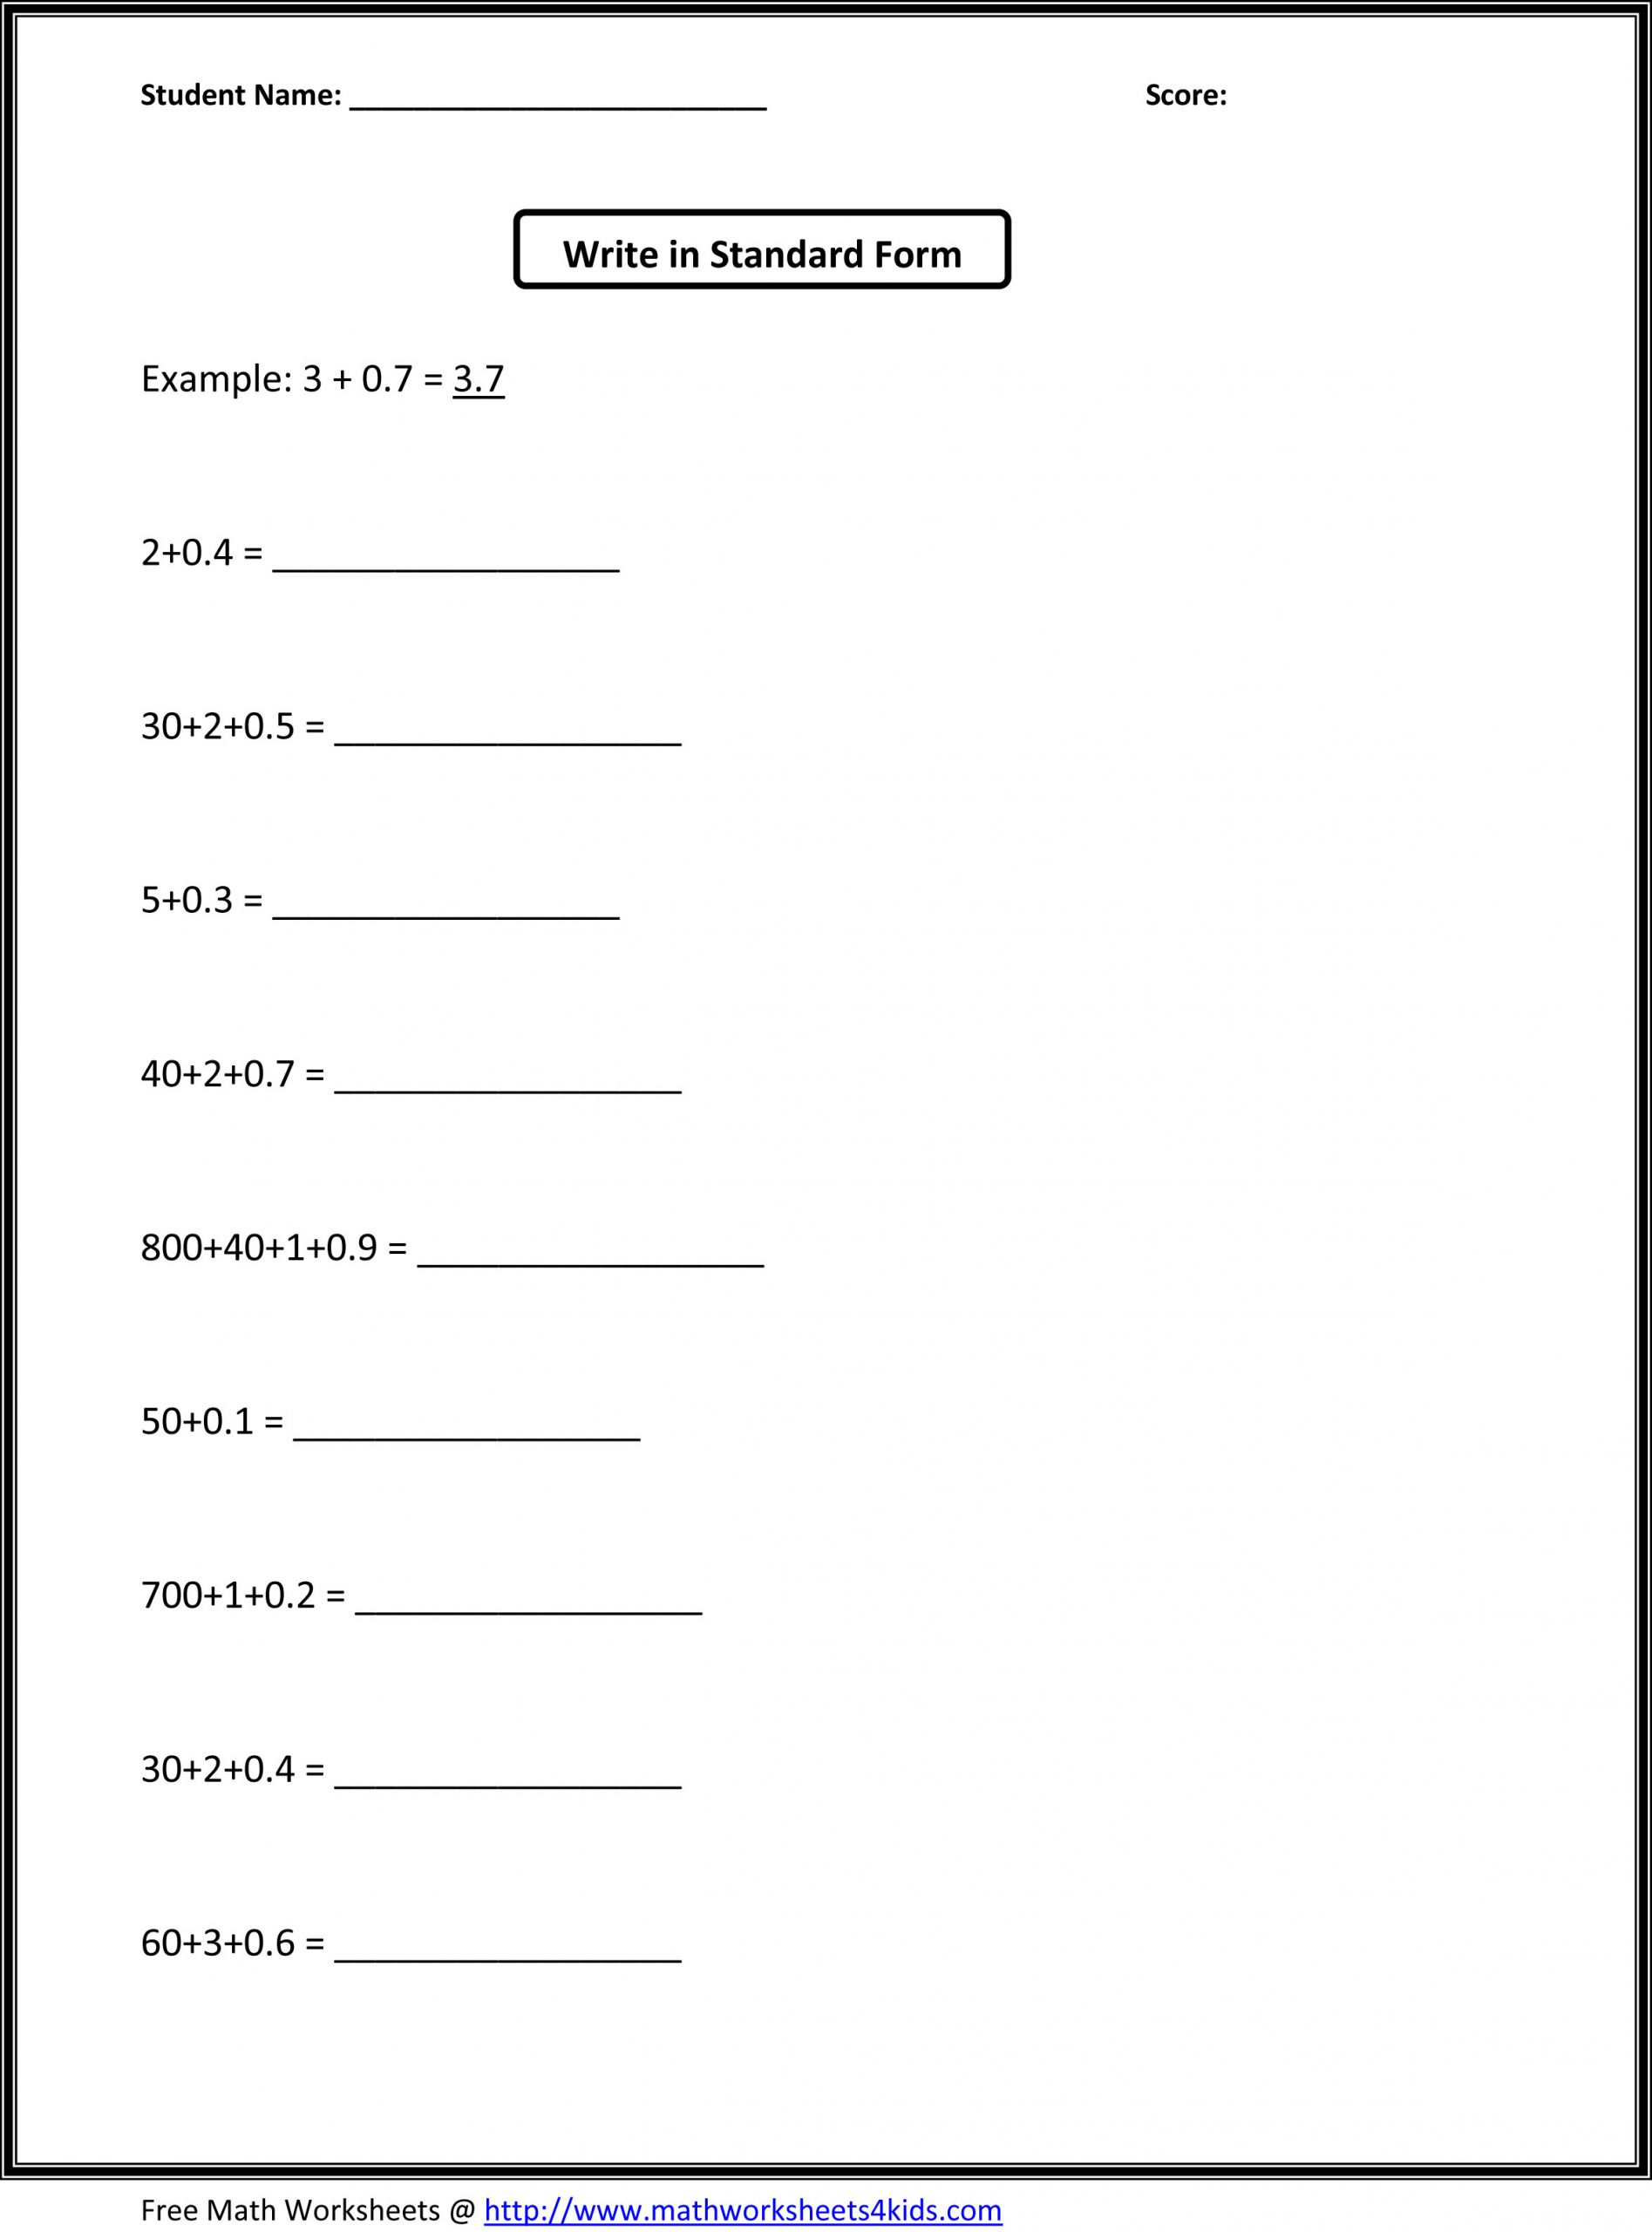 hight resolution of 5 Free Math Worksheets Fourth Grade 4 Addition Adding whole Hundreds 3  Addends - apocalomegaproductions.com